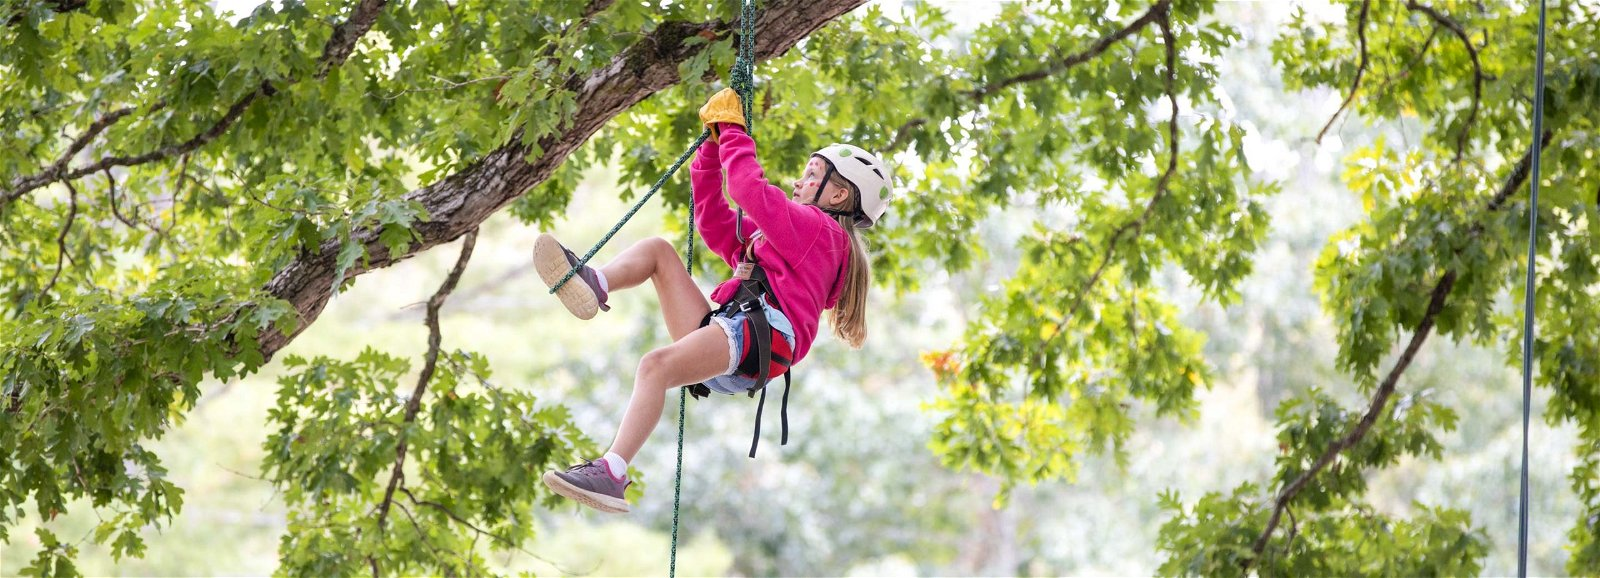 Young girl climbing up a tree in a harness